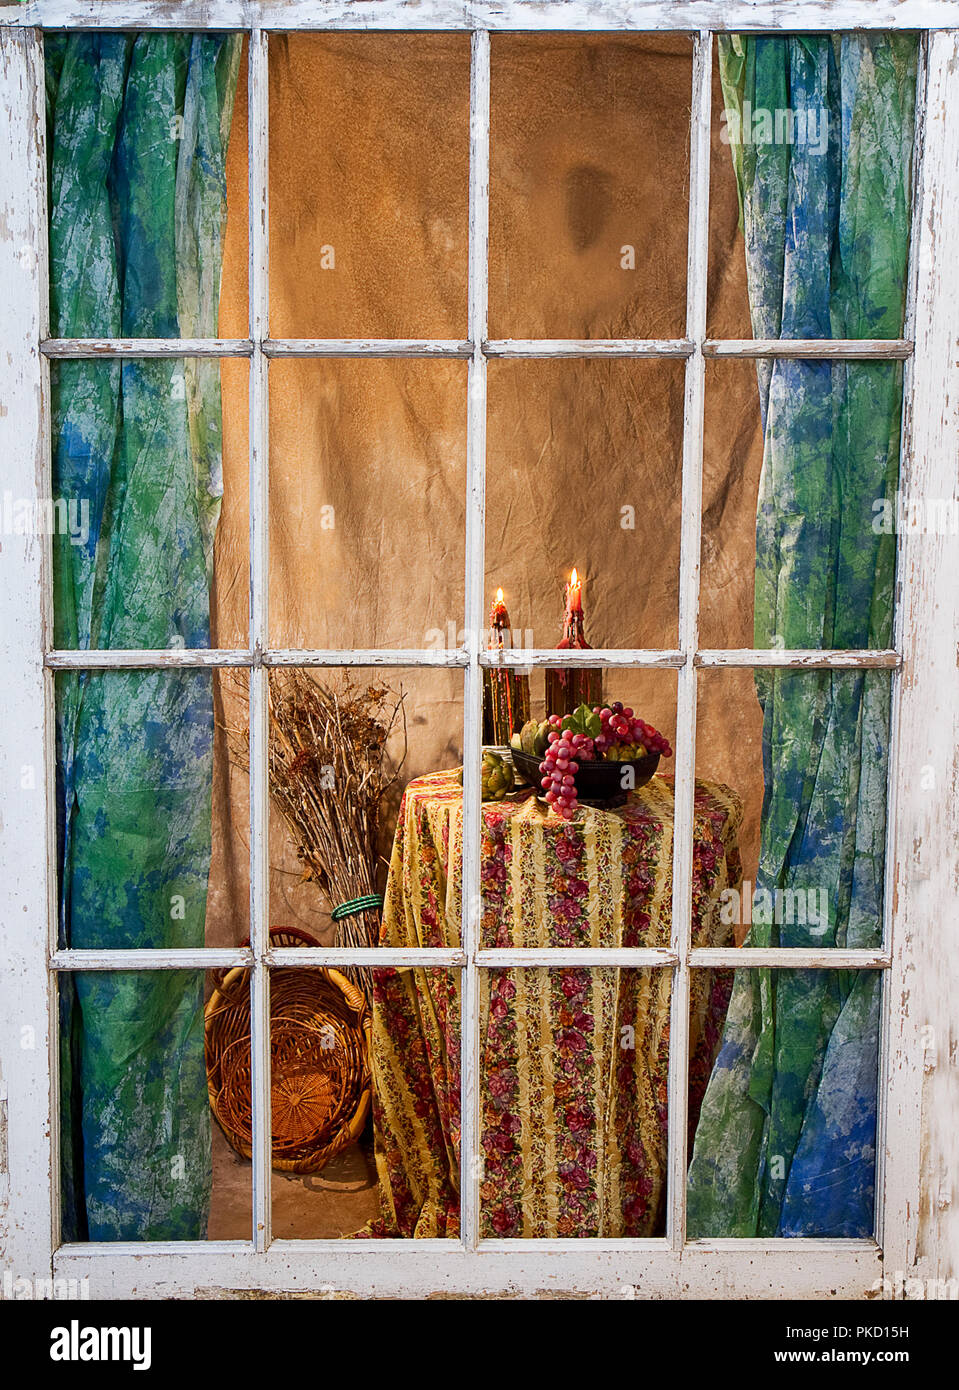 View through old weathered window-panes of quaint home with curtains and a round table with a  retro looking tablecloth and candles with dripping wax. - Stock Image